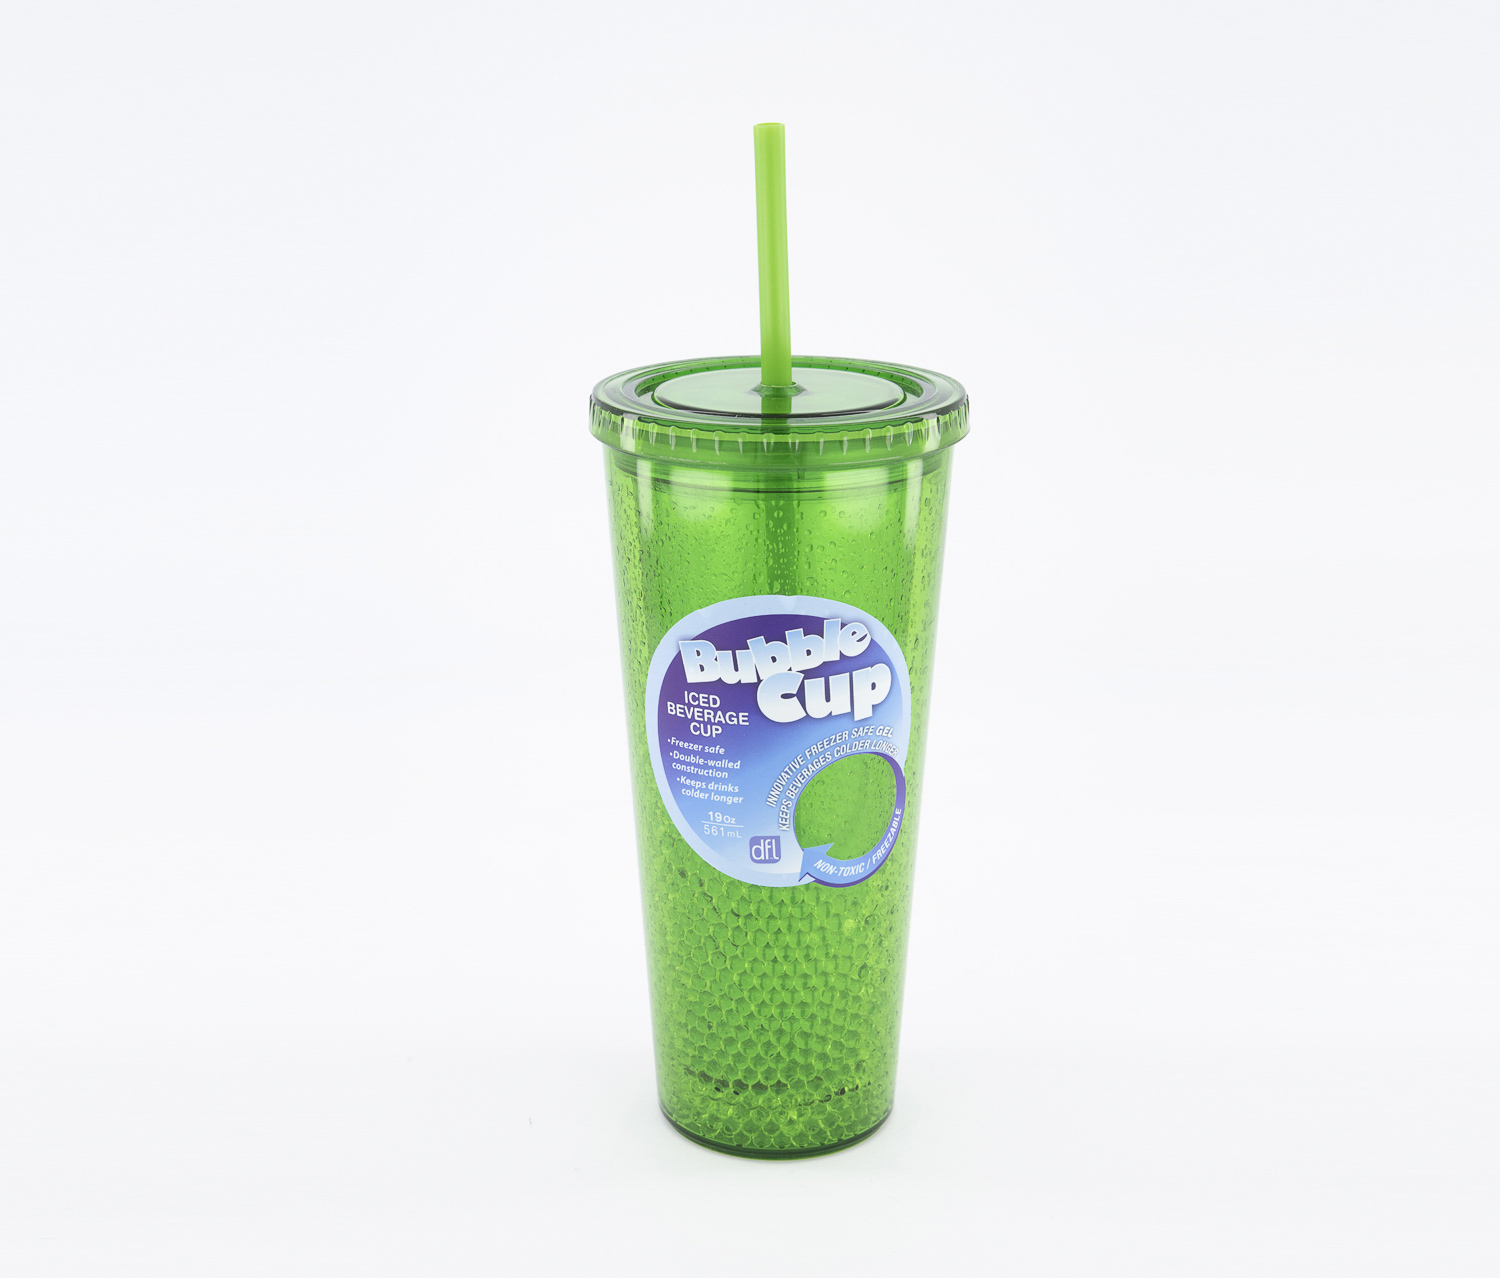 19 Oz Iced Beverage Bubble Cup, Green